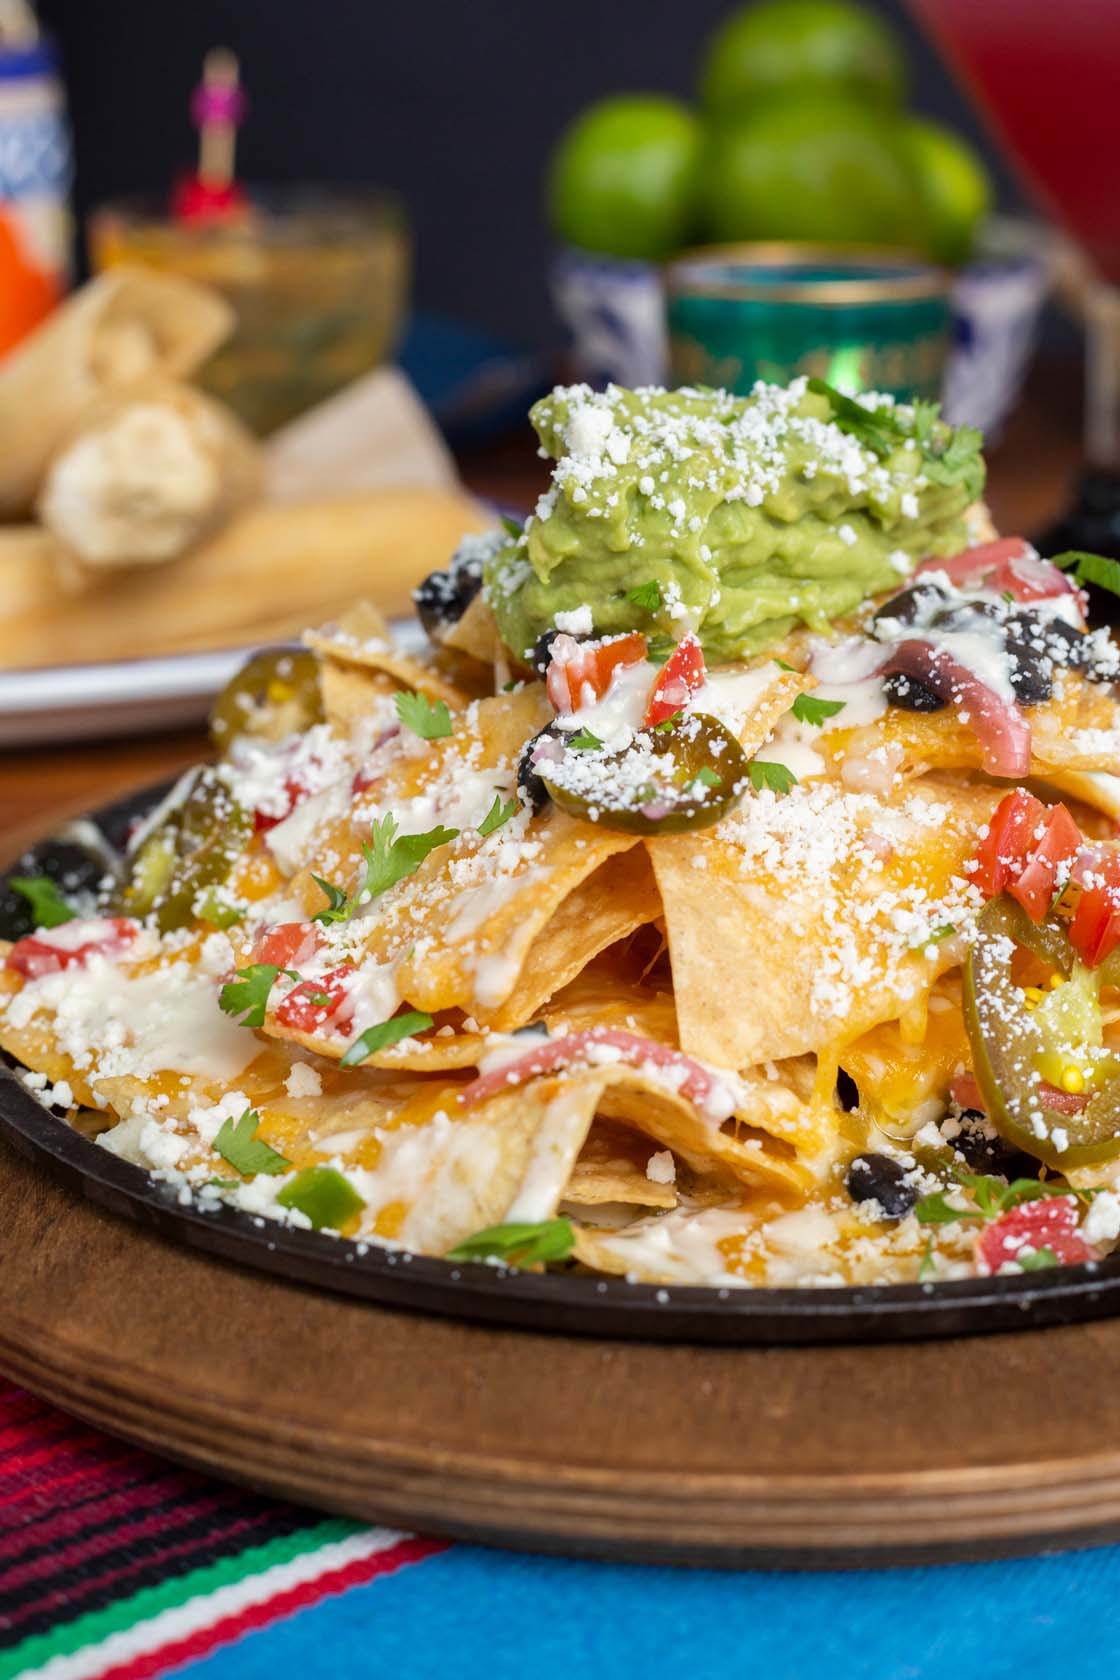 Plated nachos with dollop of guacamole on top and sliced jalapeños, tomatoes and black olives, crumbled cheese.